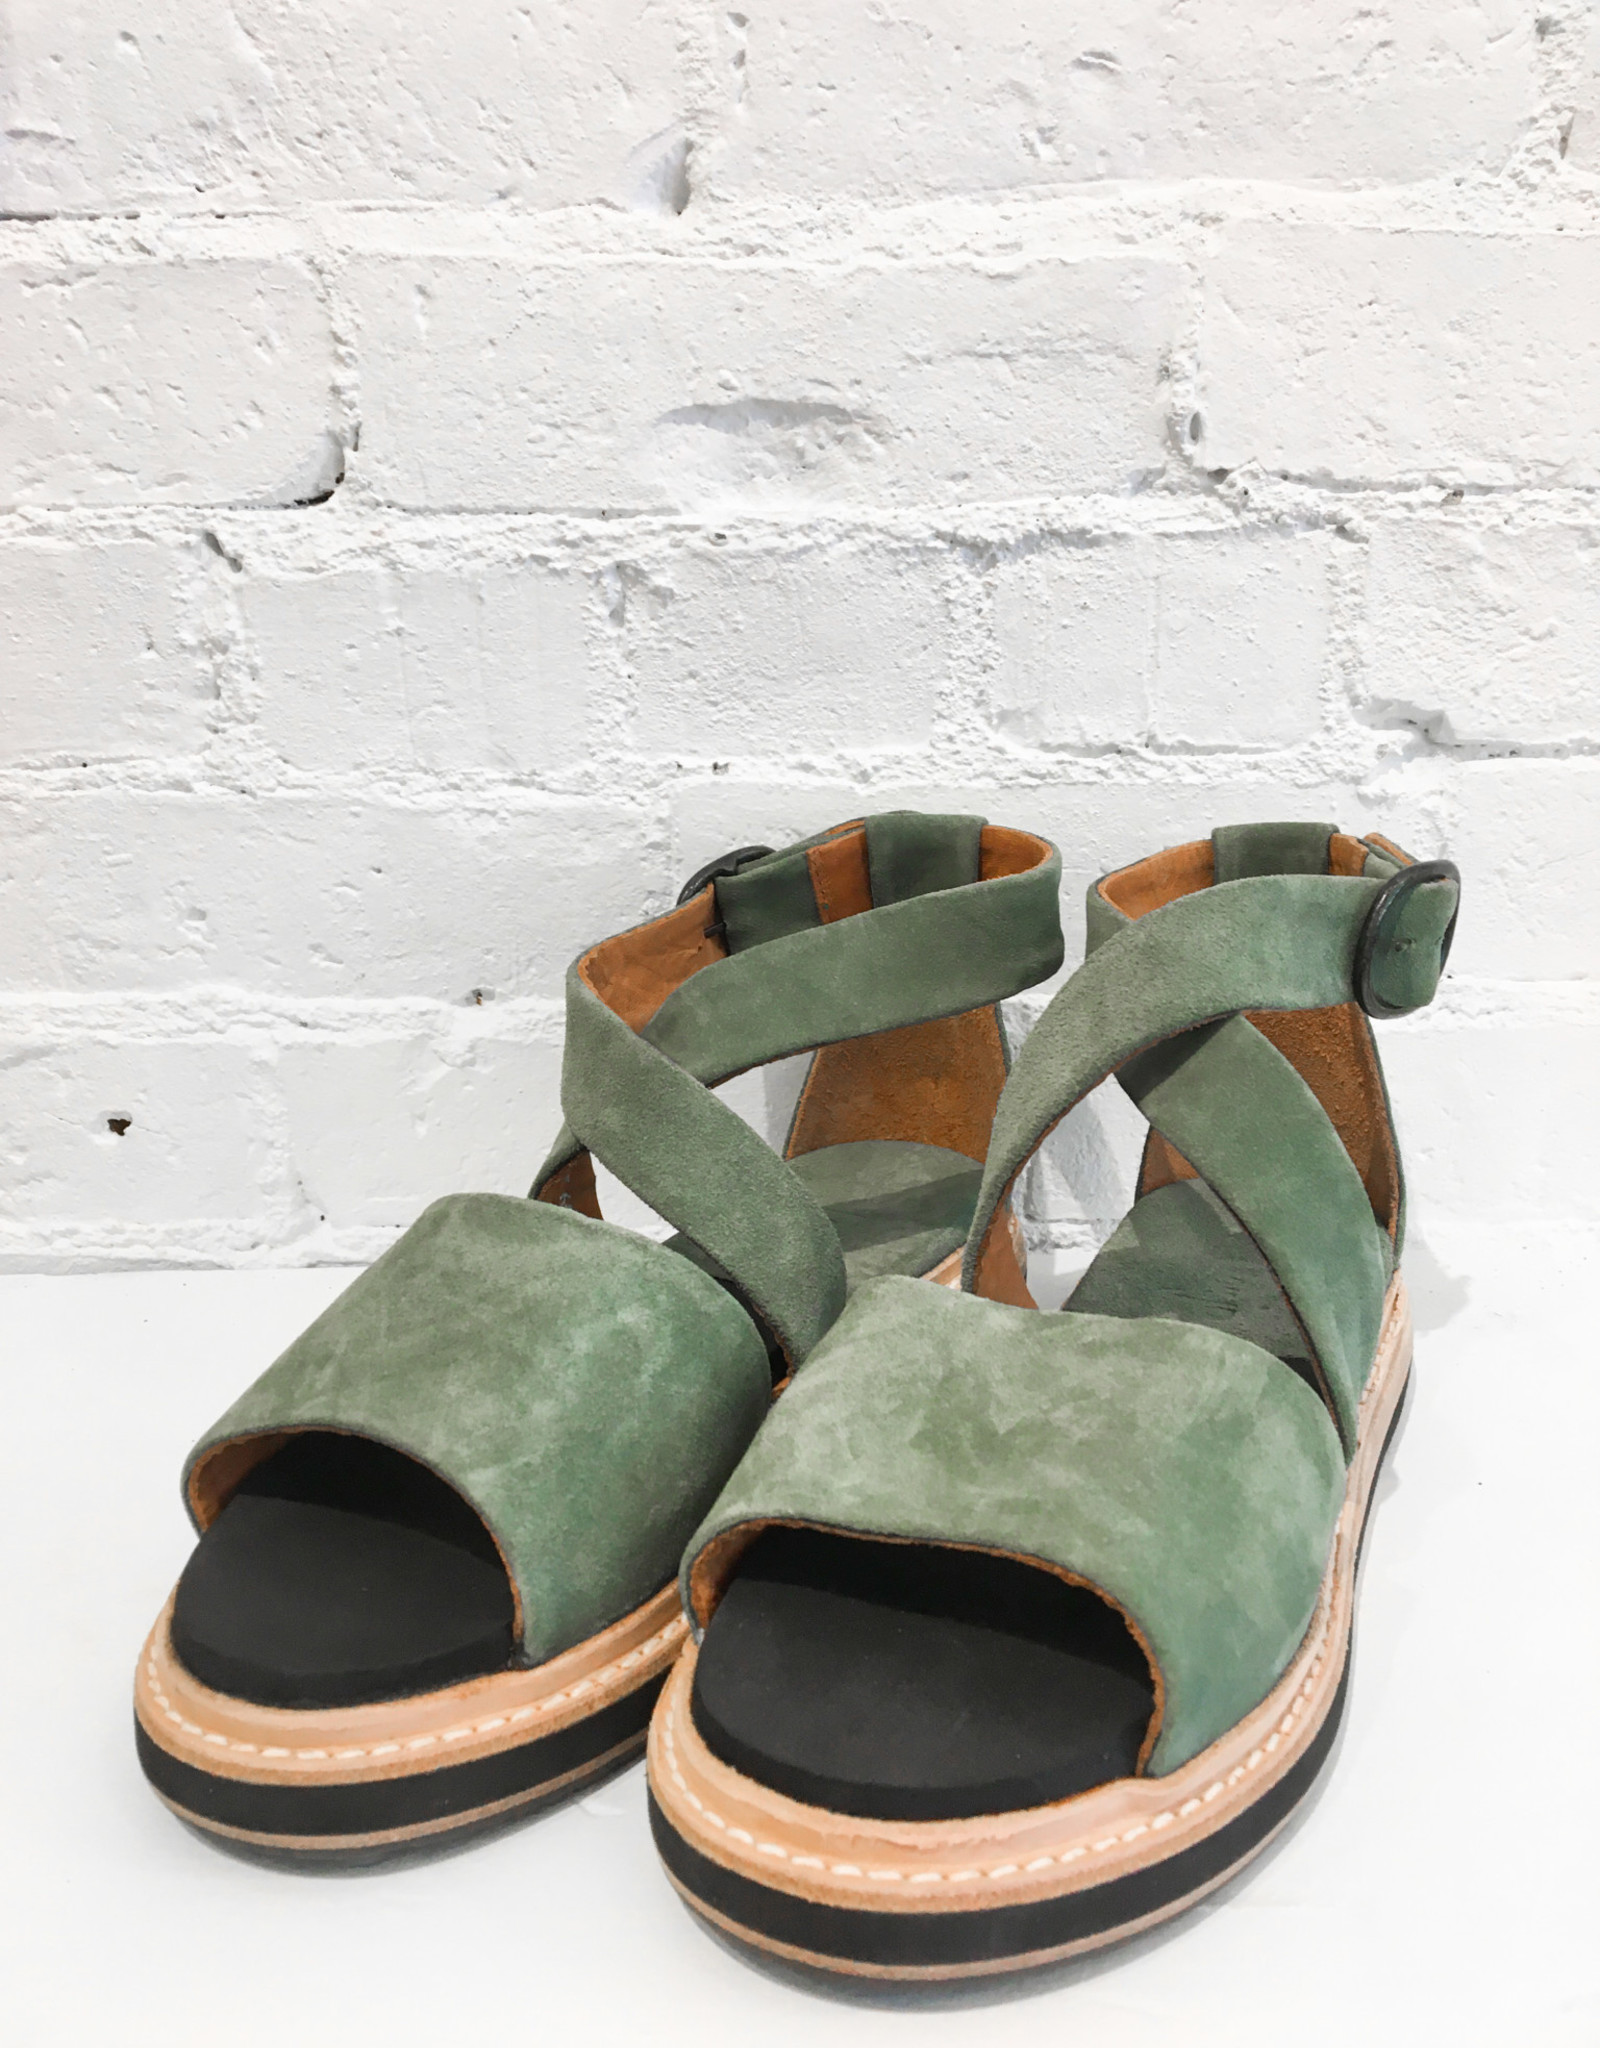 P. Monjo Softy Militaire Sandals